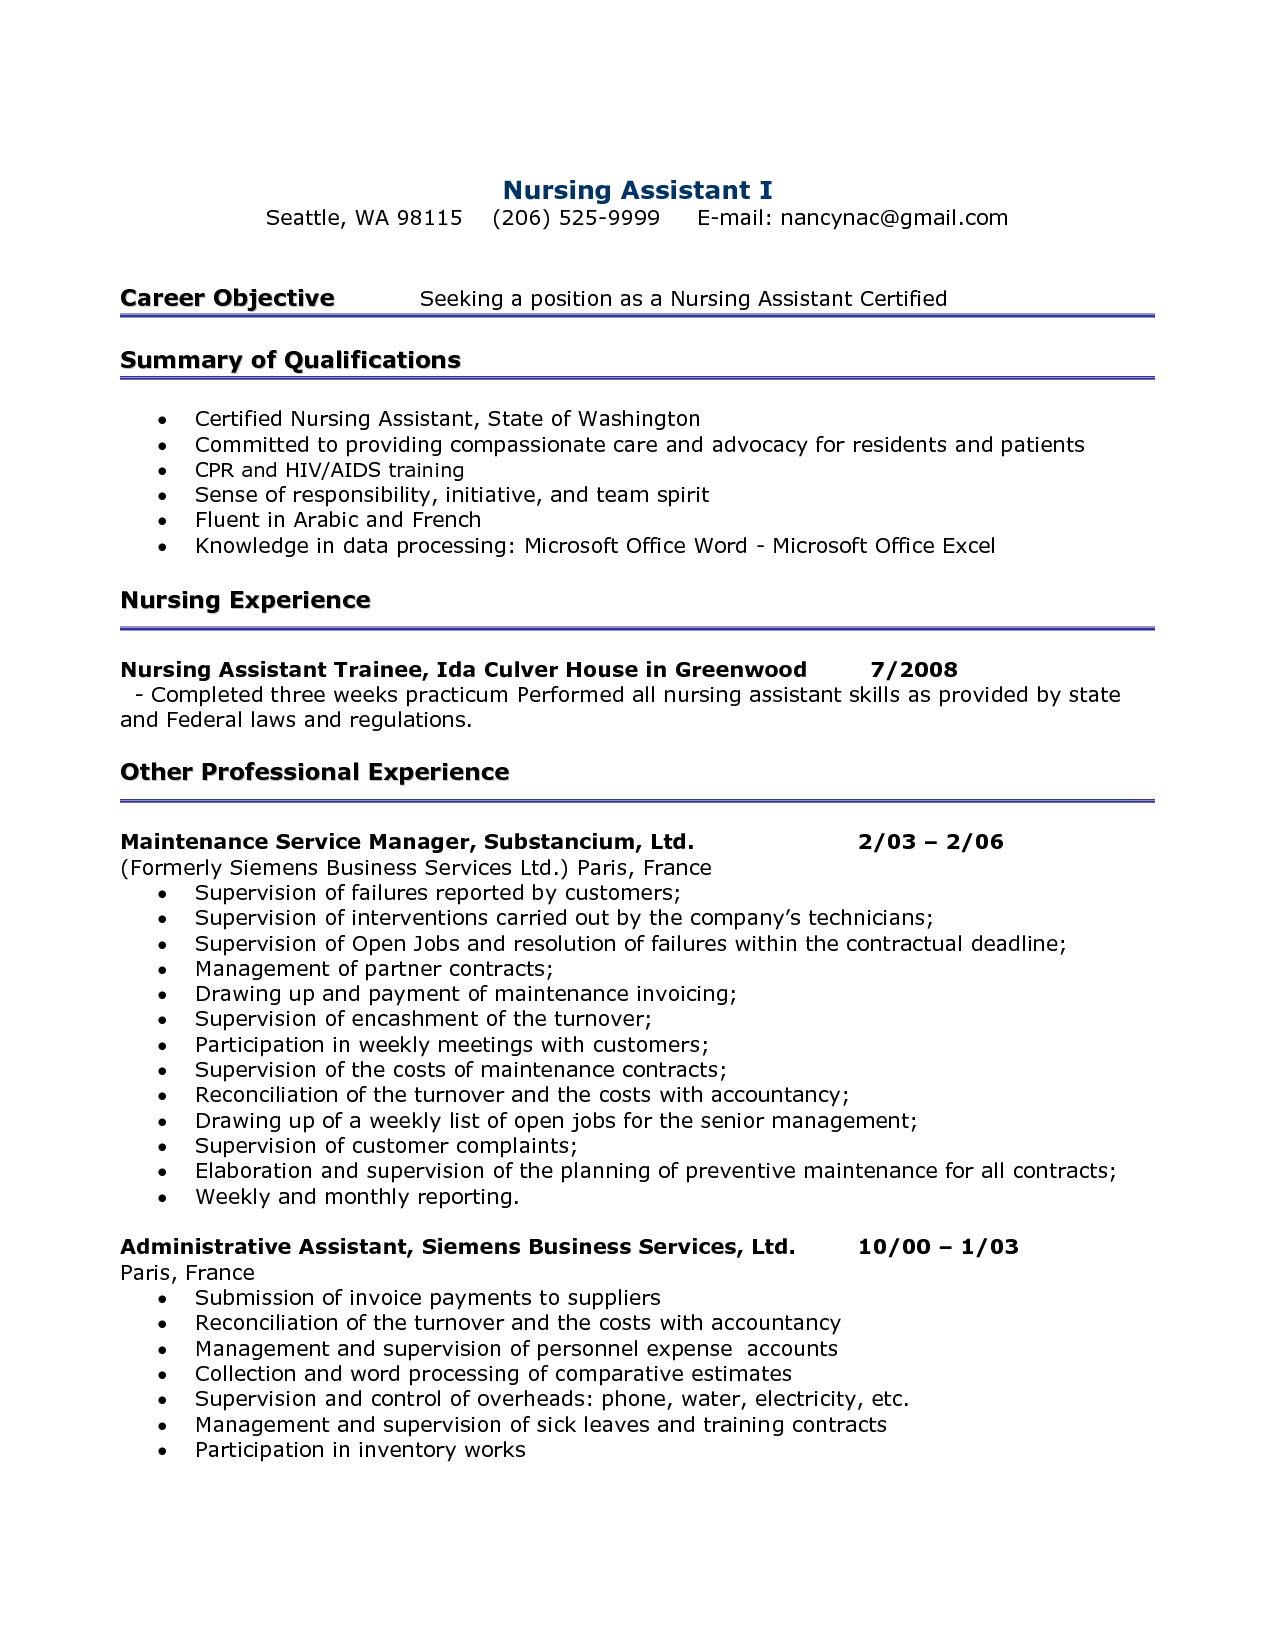 Perfect Certified Nursing Assistant Resume   Http://www.resumecareer.info/certified For Cna Resume With Experience